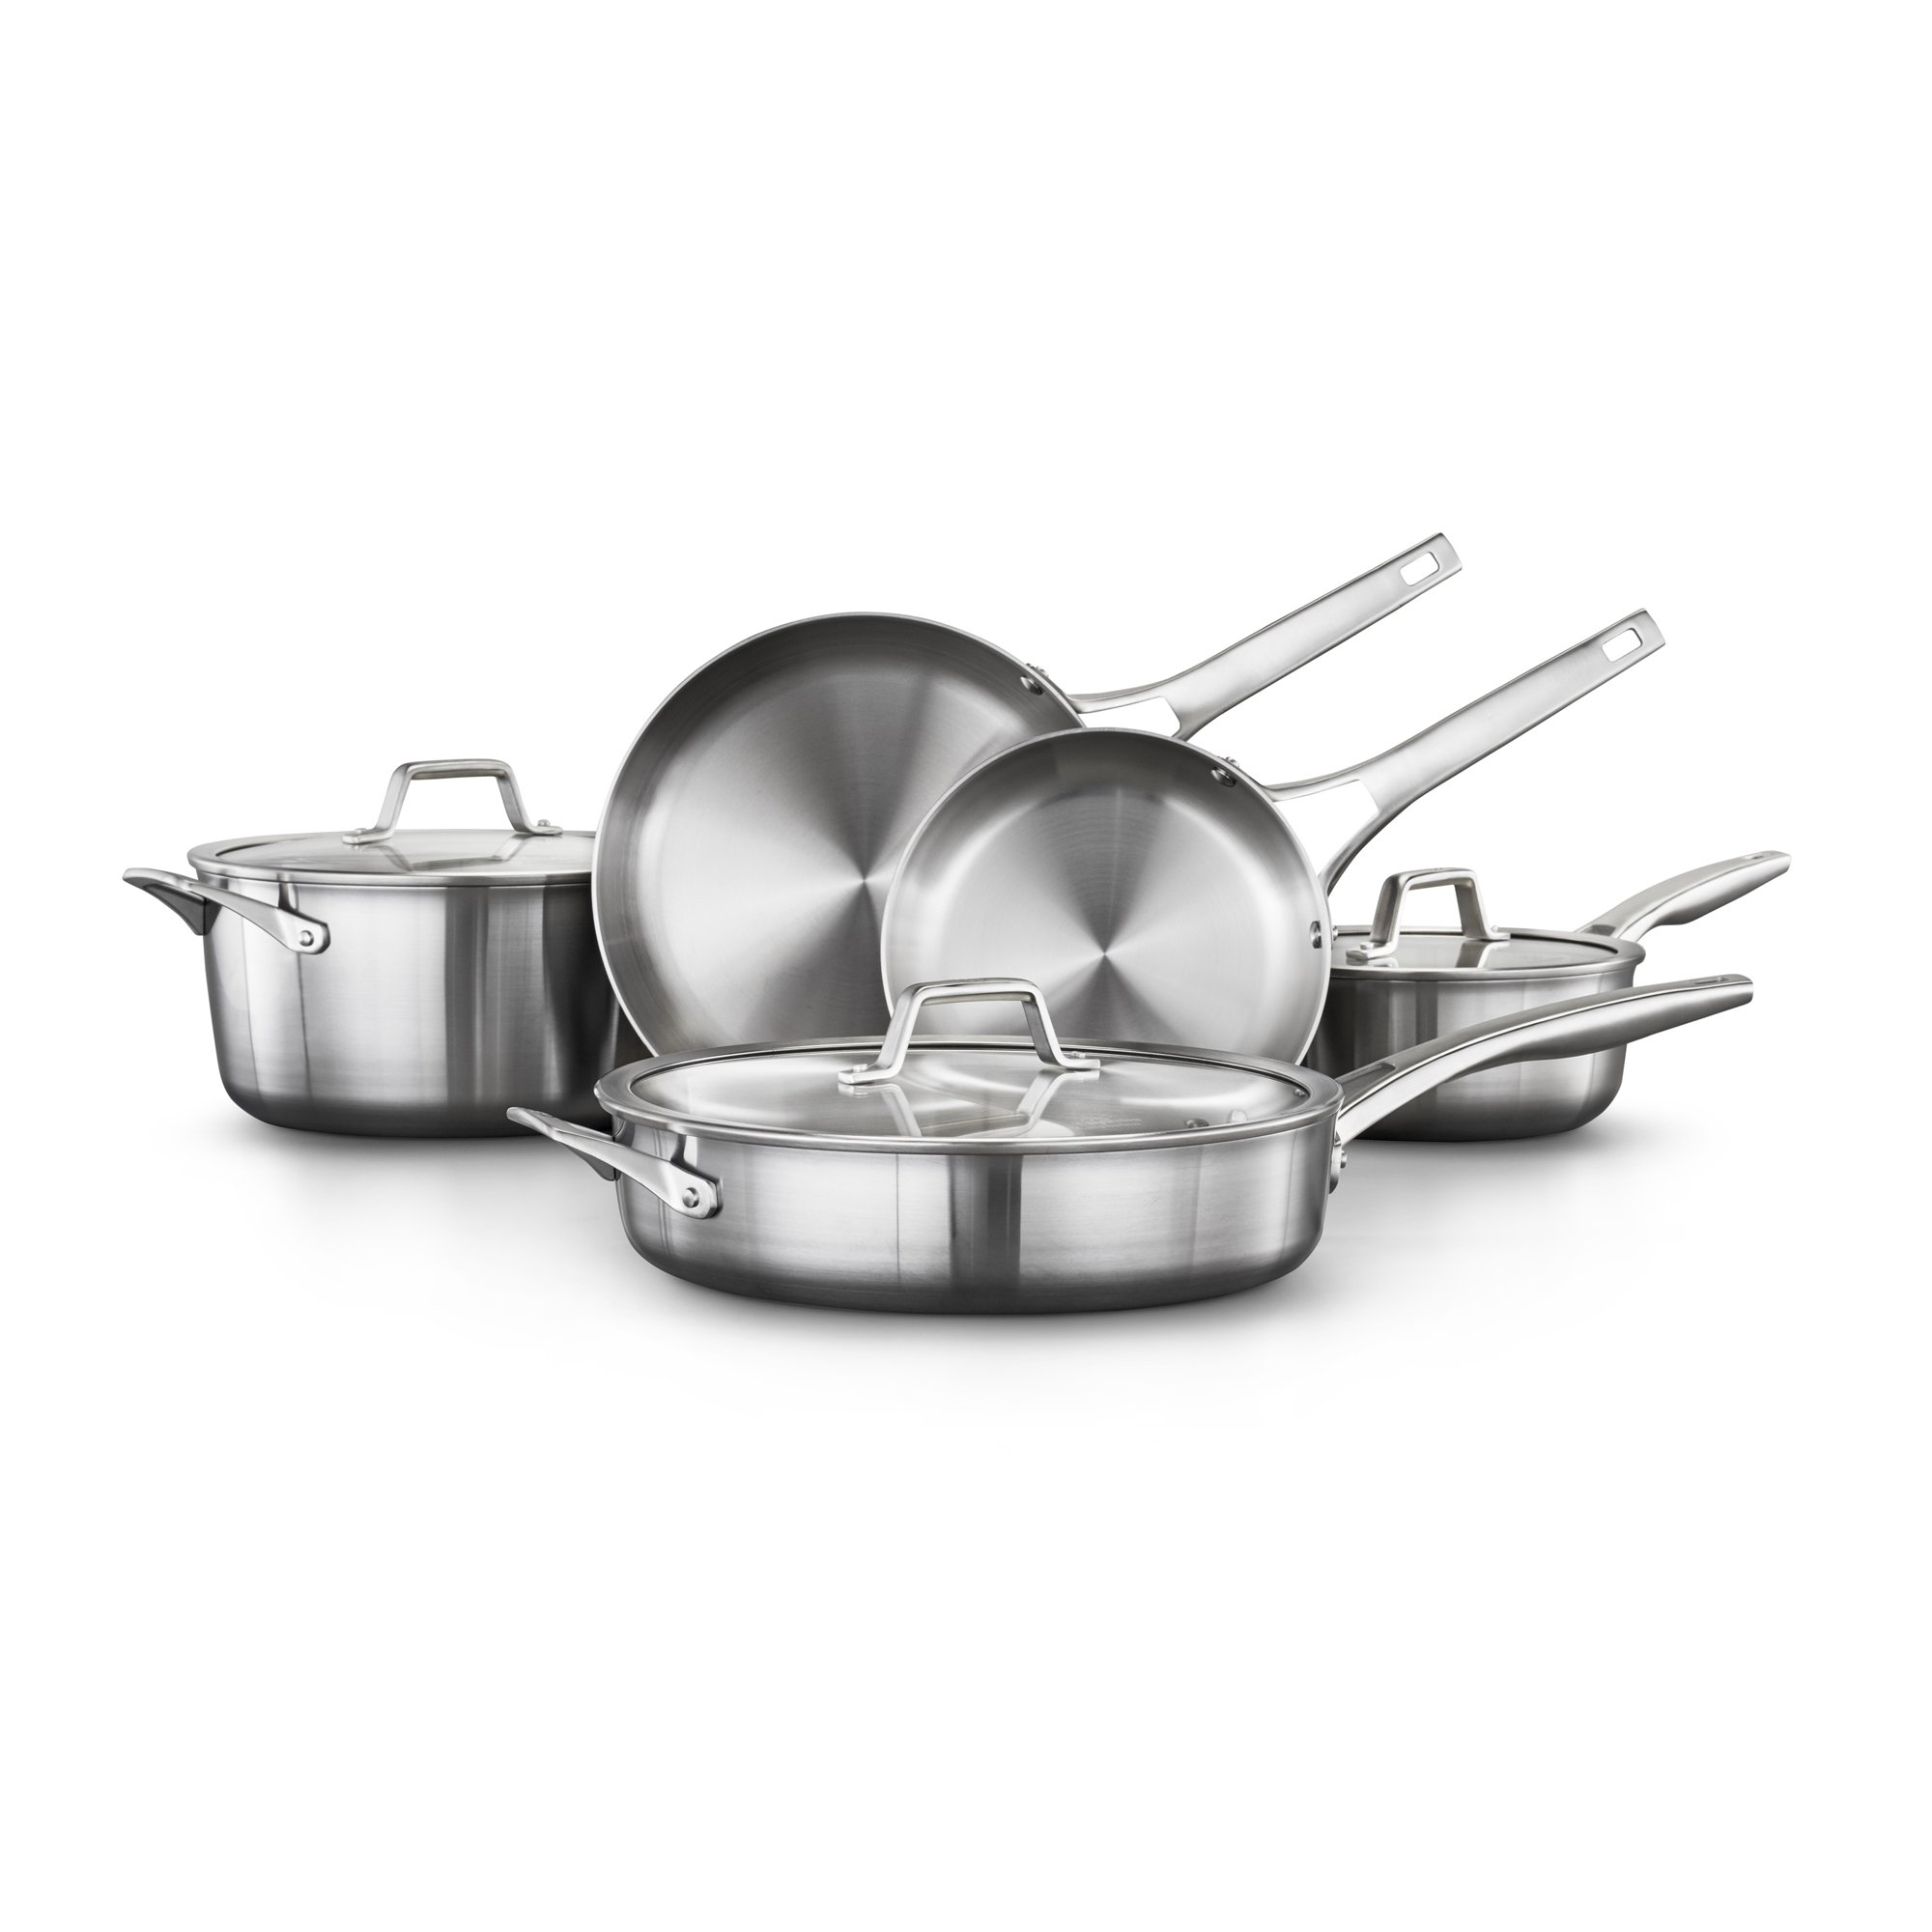 Calphalon Premier Stainless Steel 8-Piece Cookware Set